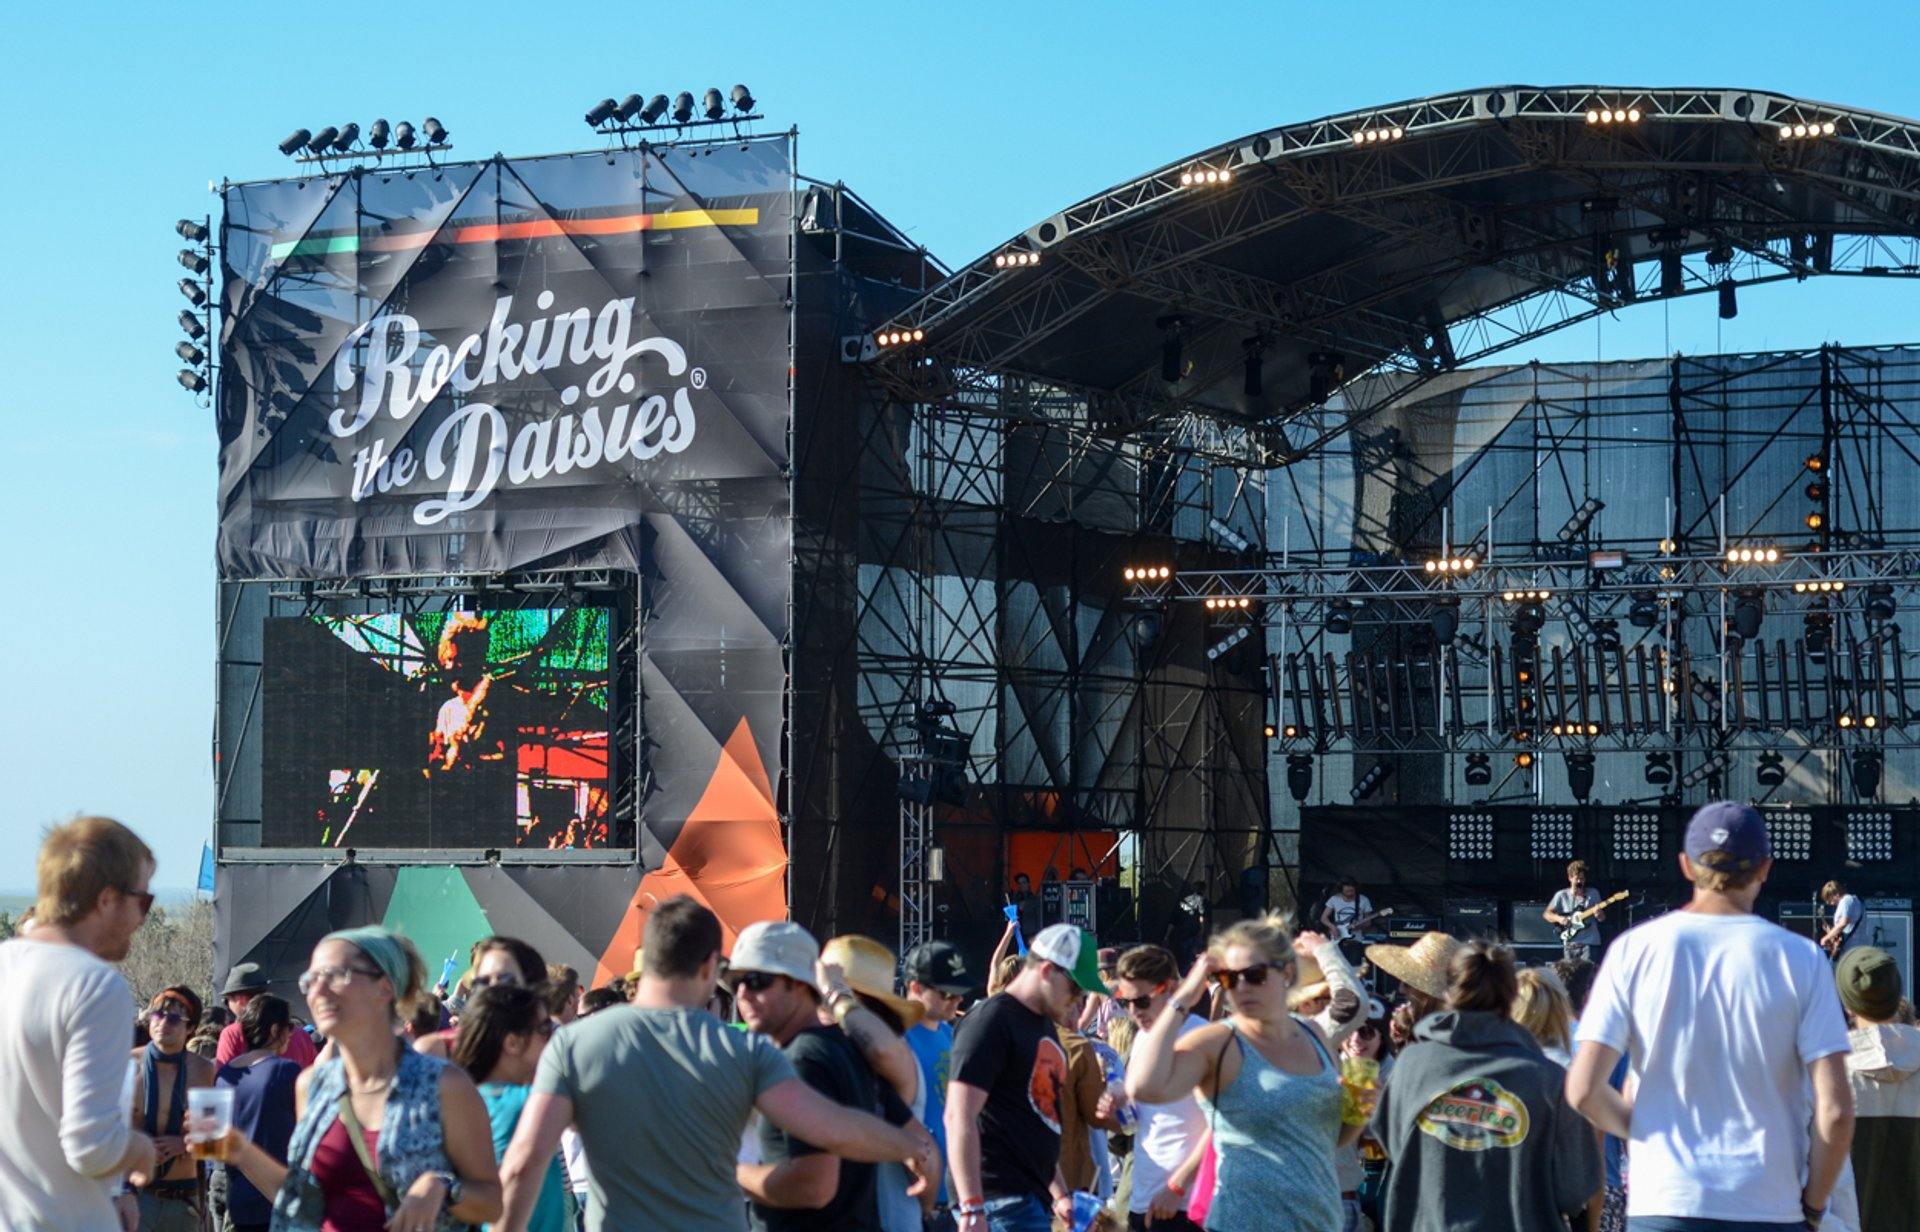 Rocking the Daisies in South Africa 2020 - Best Time